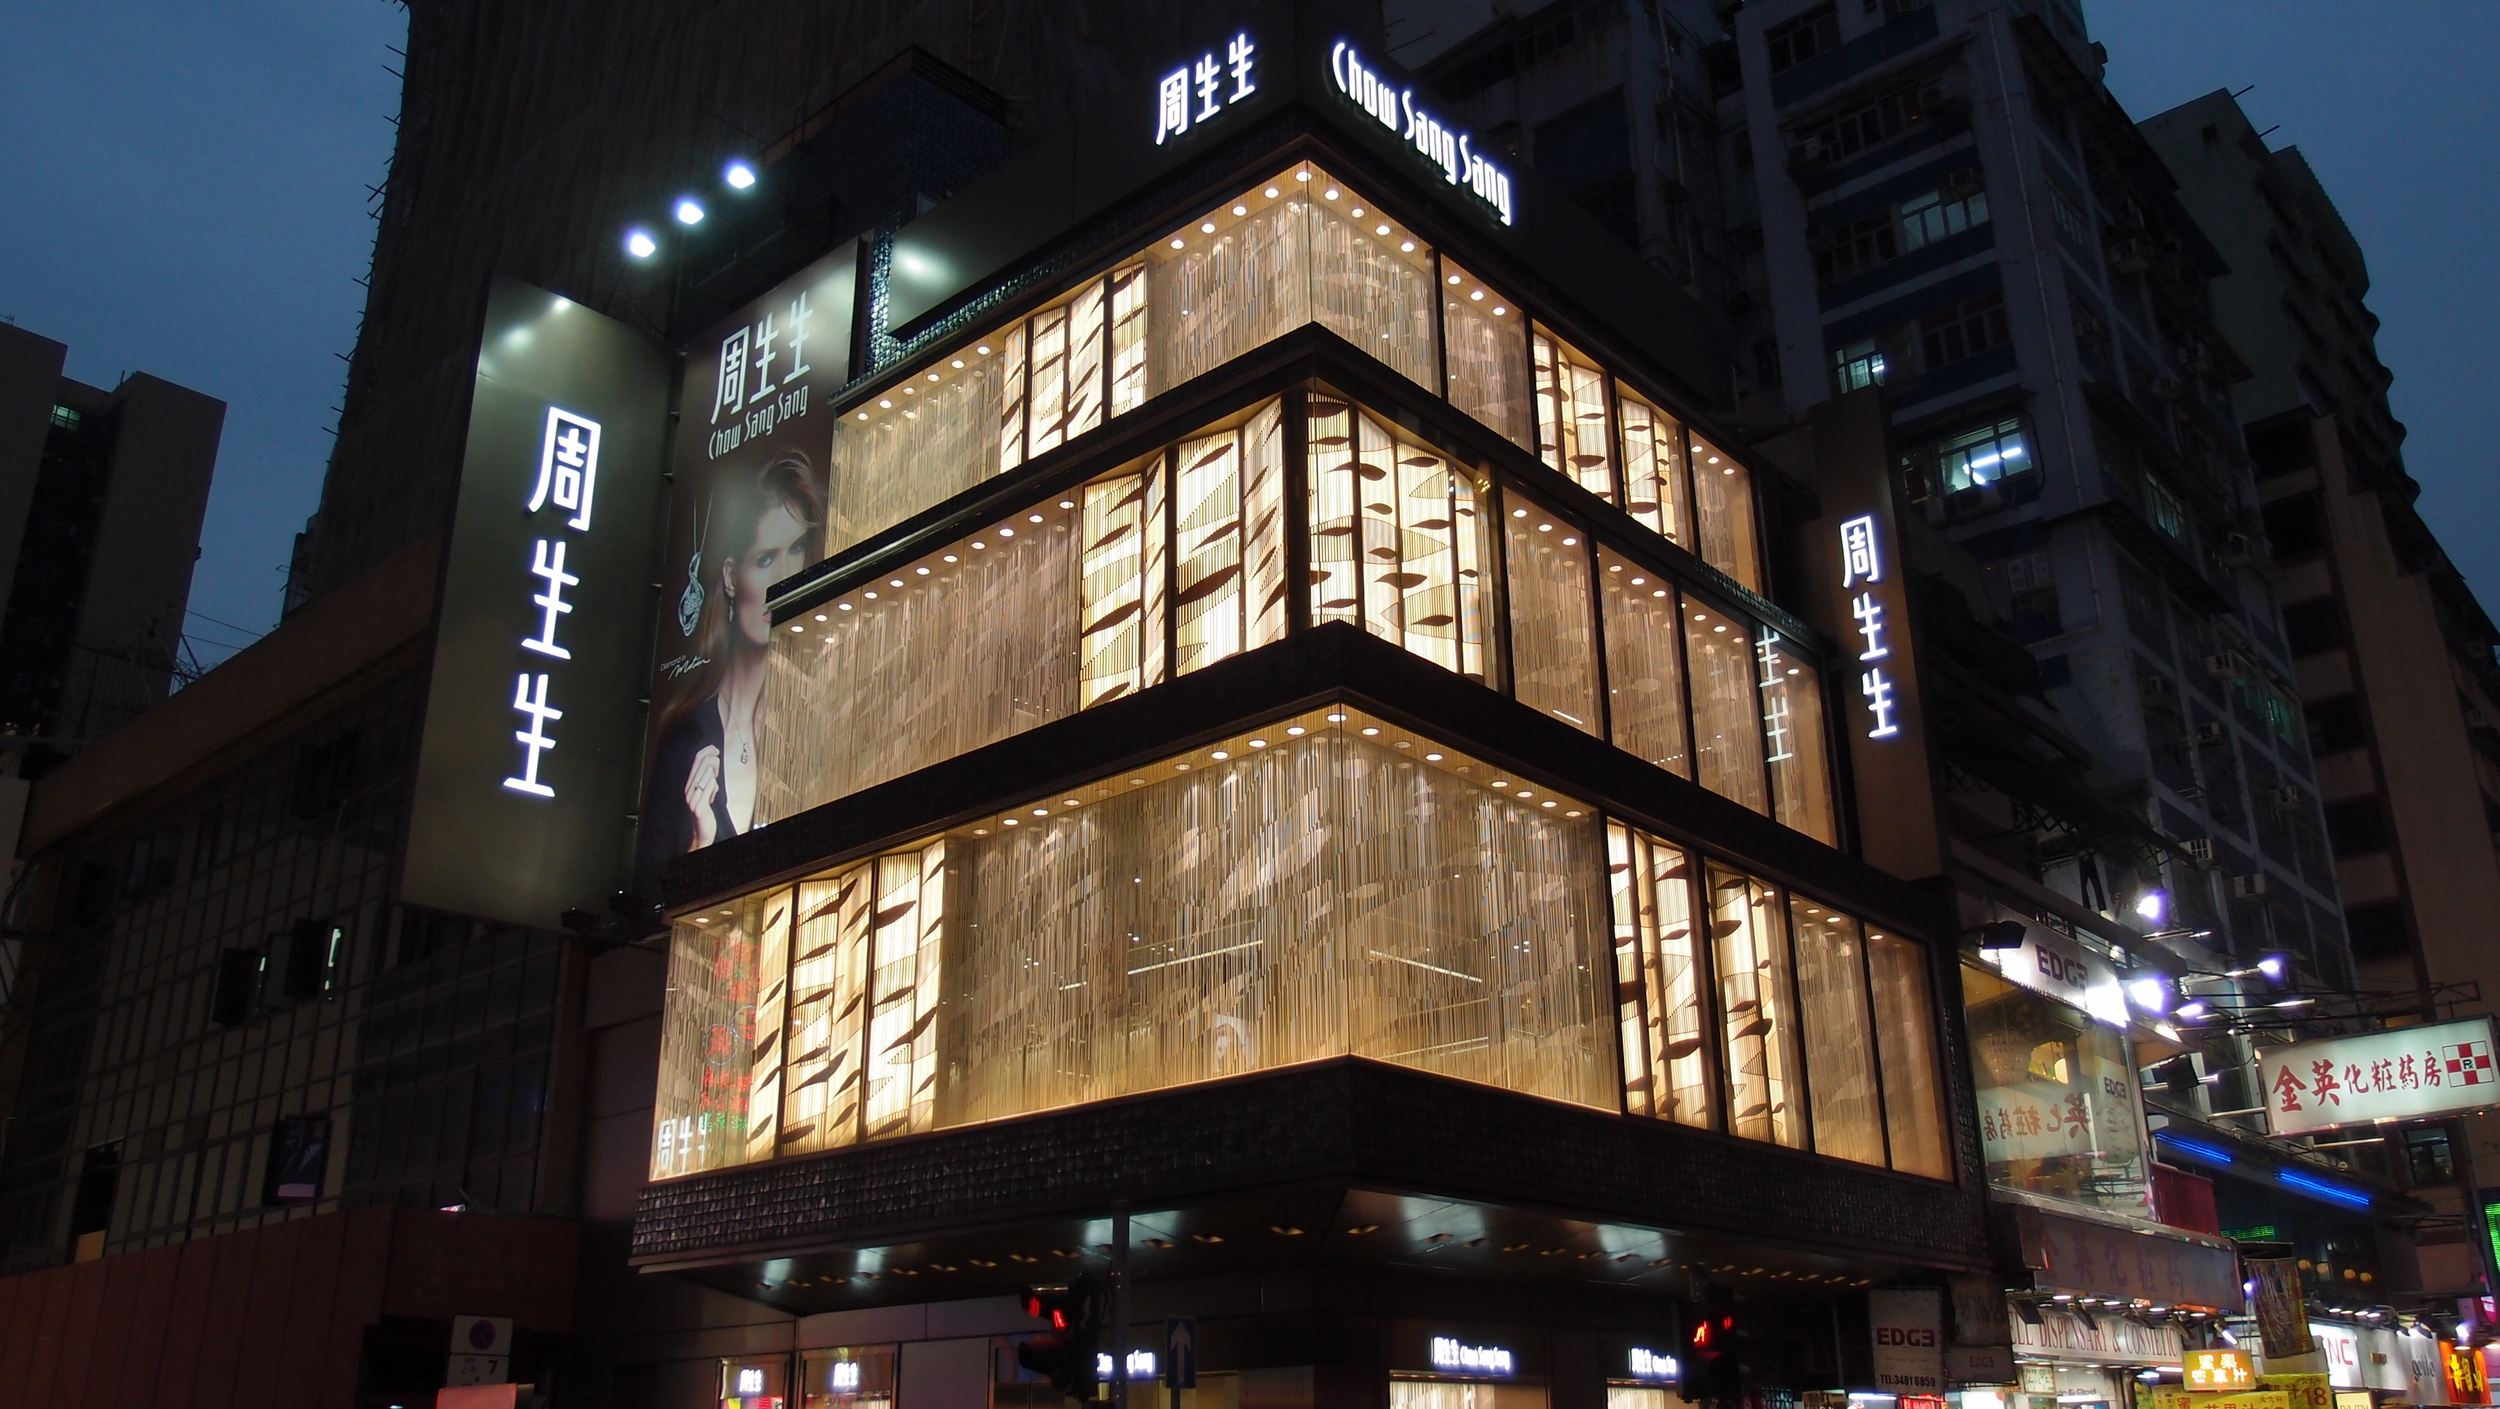 Chow Sang Sang is not quite as big as the Chow Tai Fook Jewellery Company